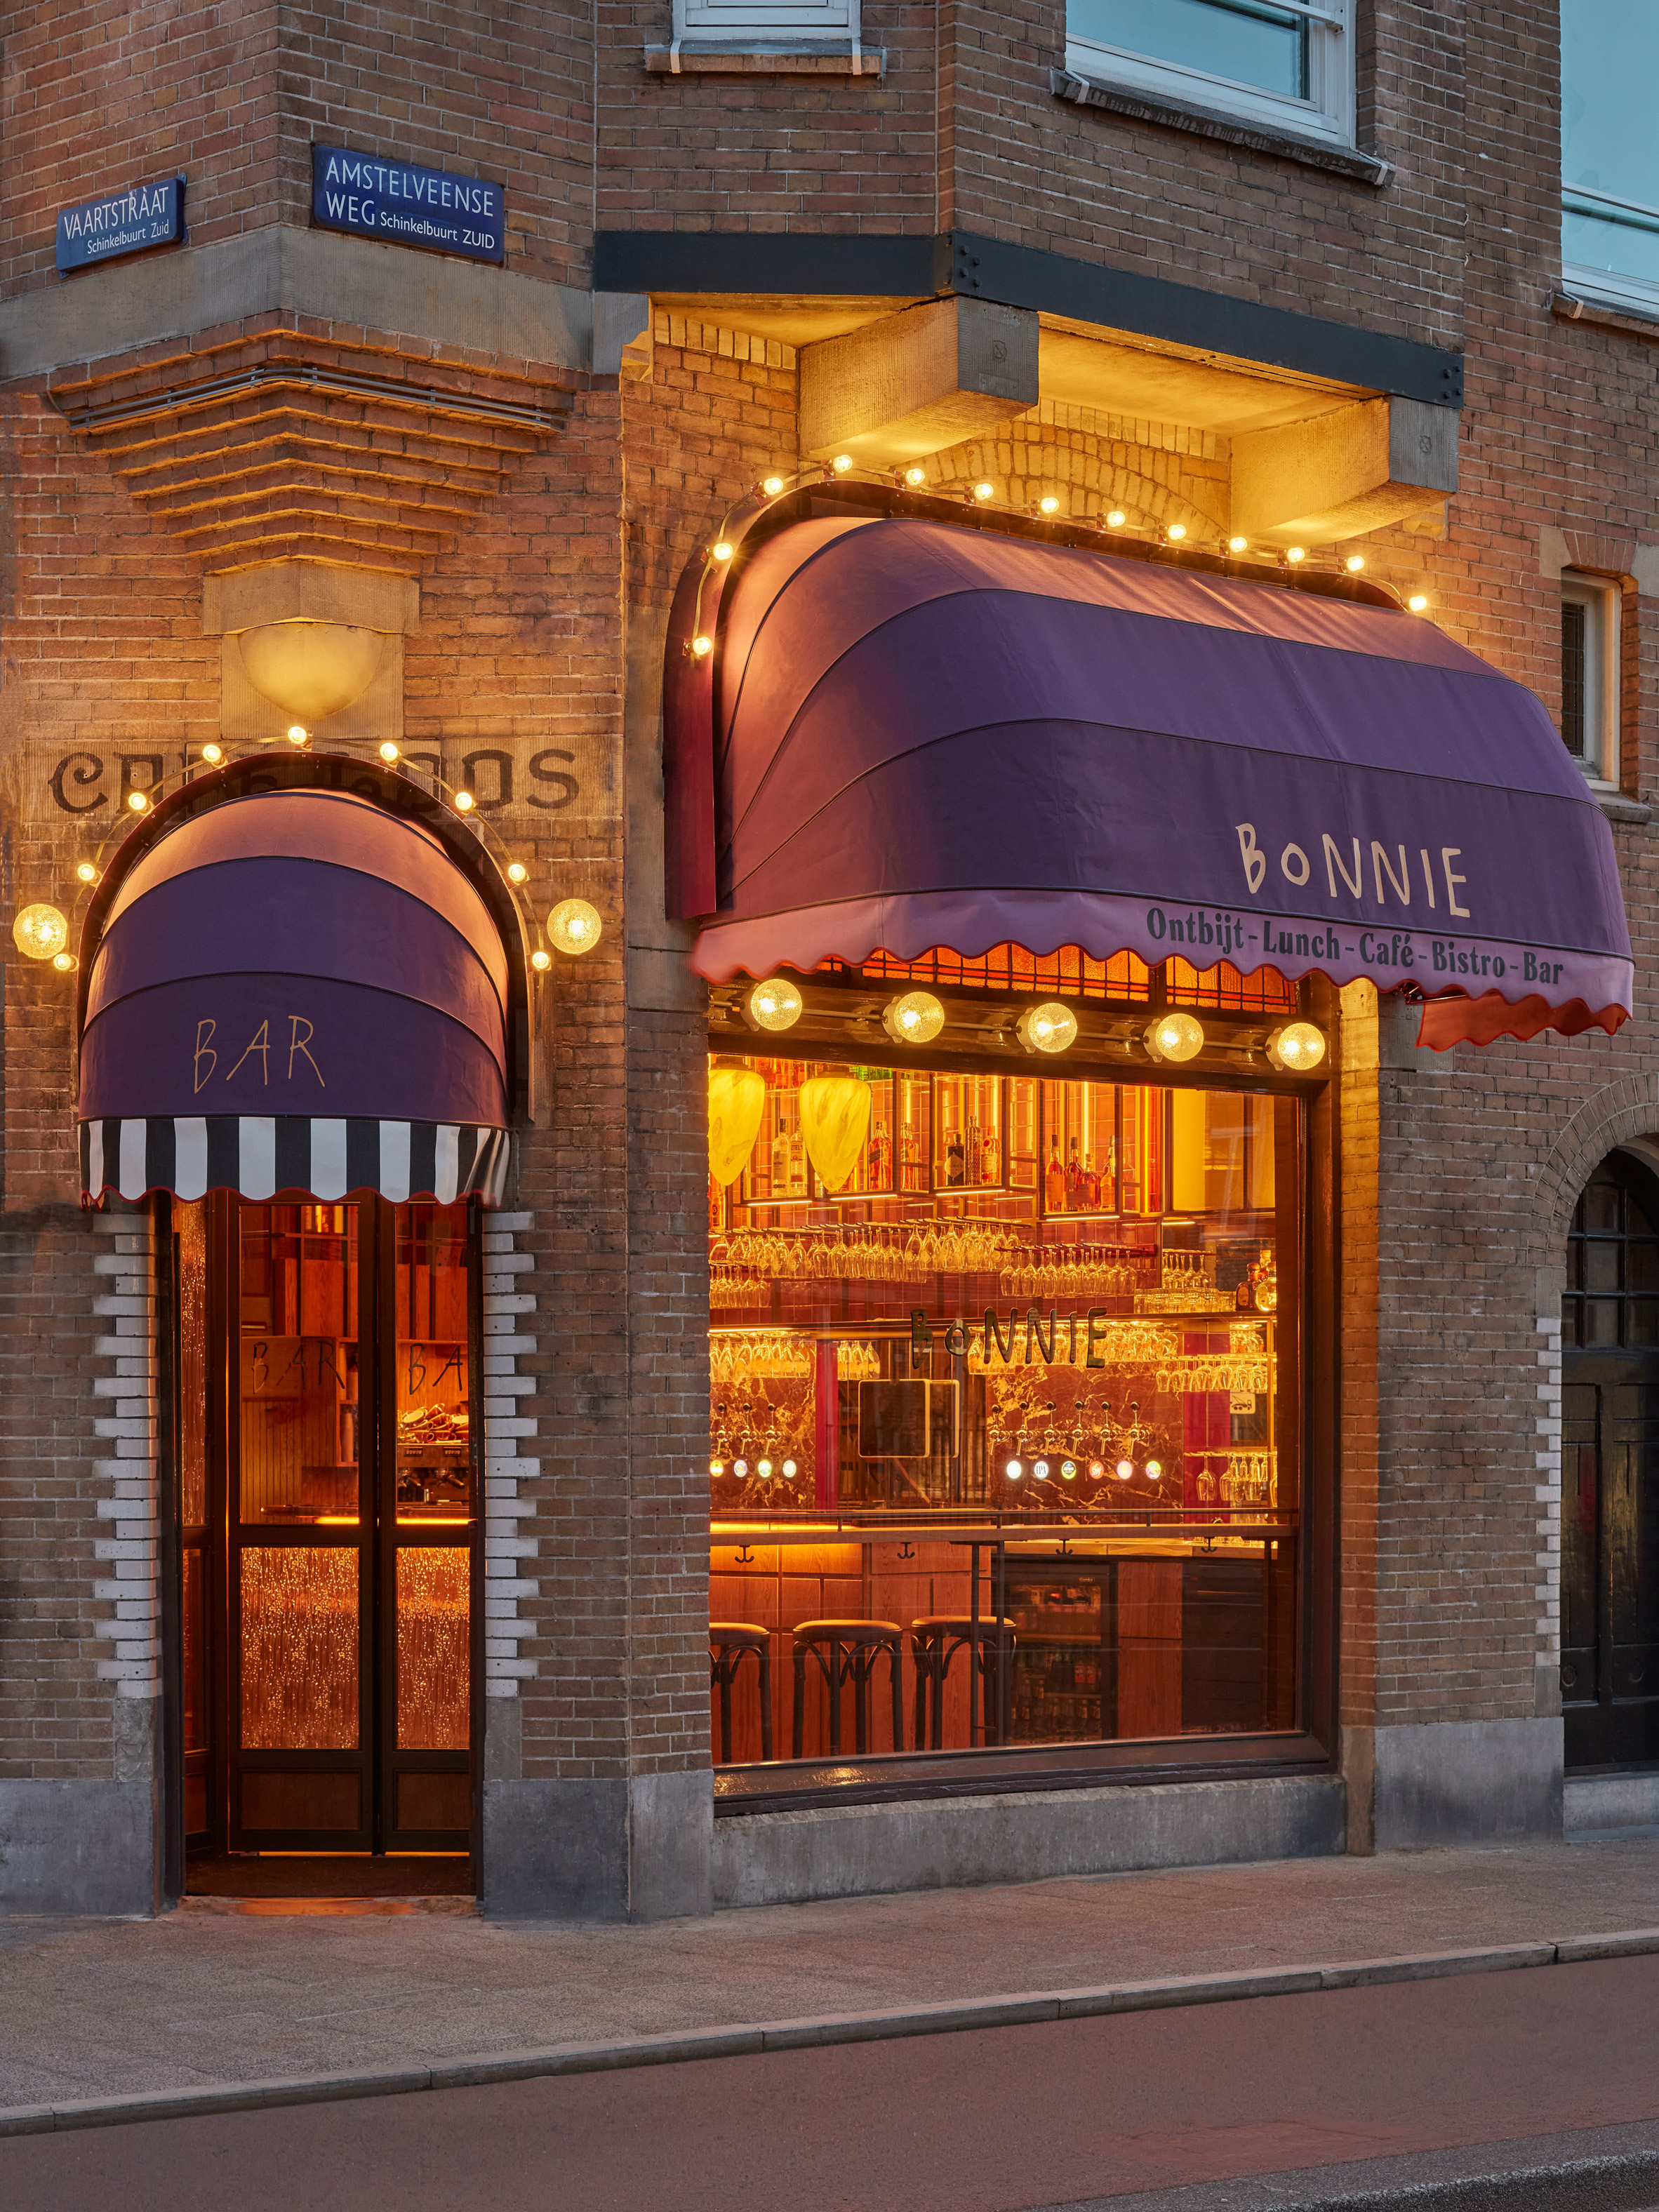 Bonnie restaurant in Amsterdam designed by Studio Modijefsky